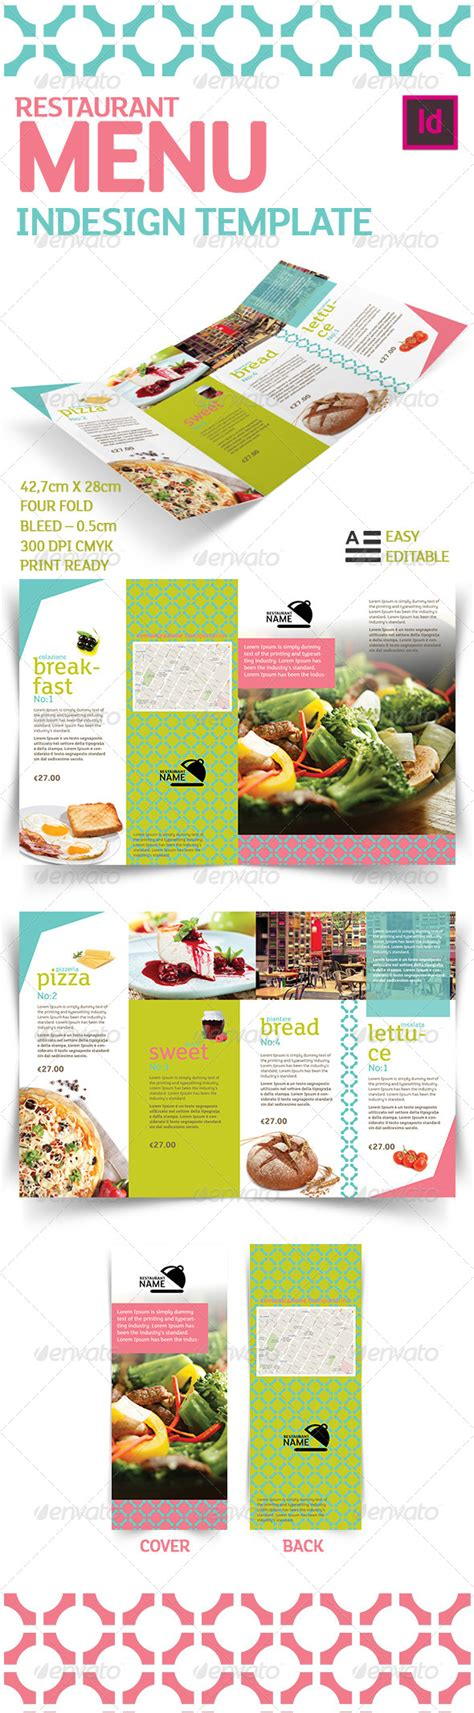 Print Template Graphicriver Restaurant Menu Indesign Template 5744939 187 Dondrup Com Indesign Menu Template